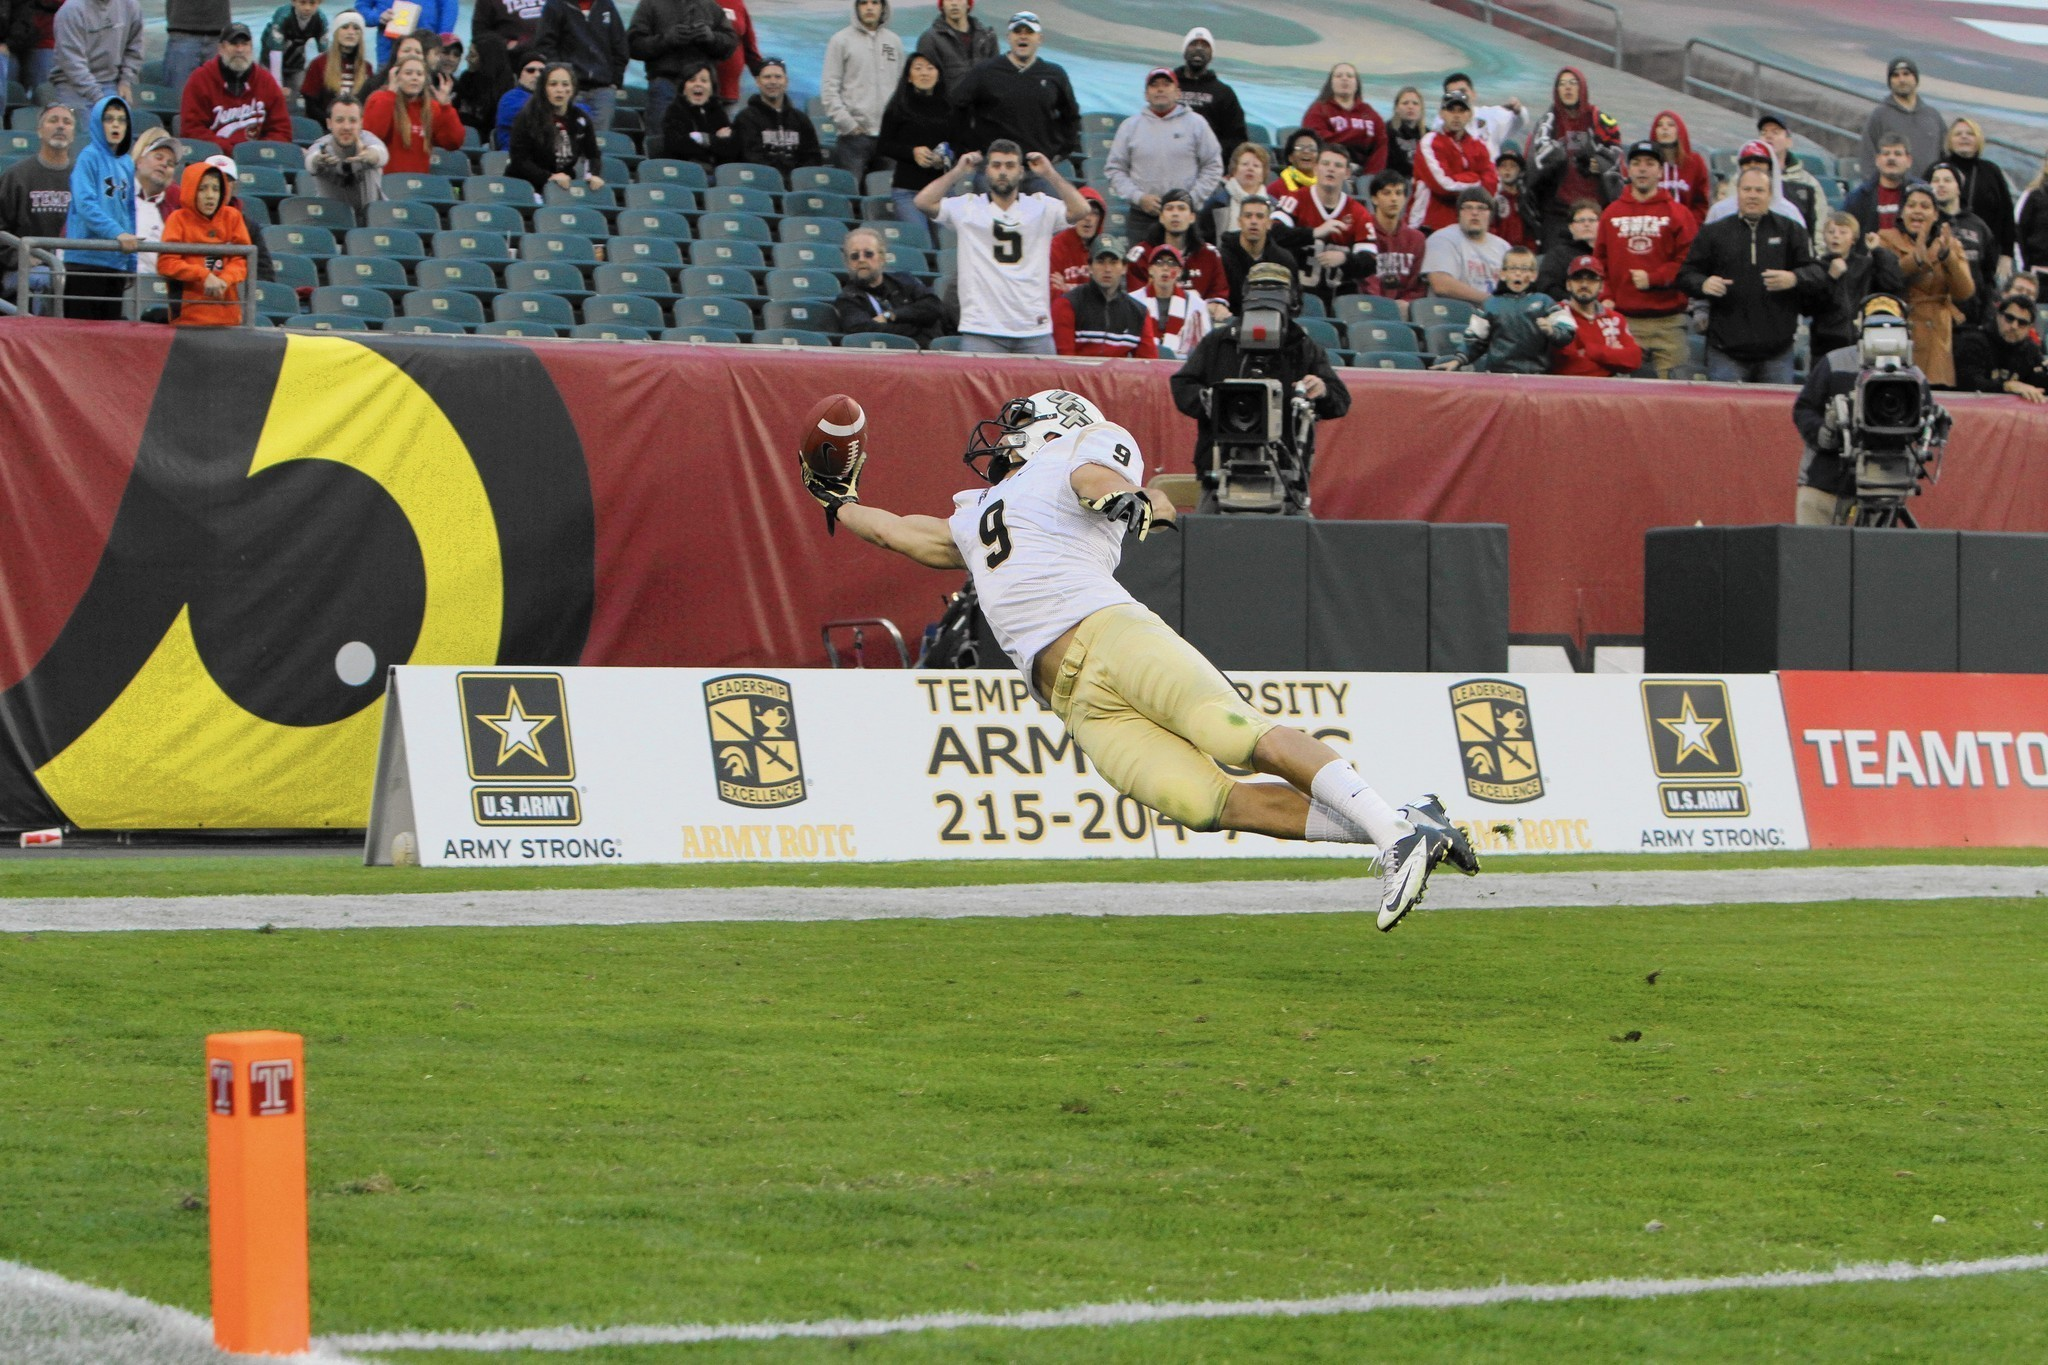 The Catch Vaults Ucf S J J Worton Into Spotlight After Years Of